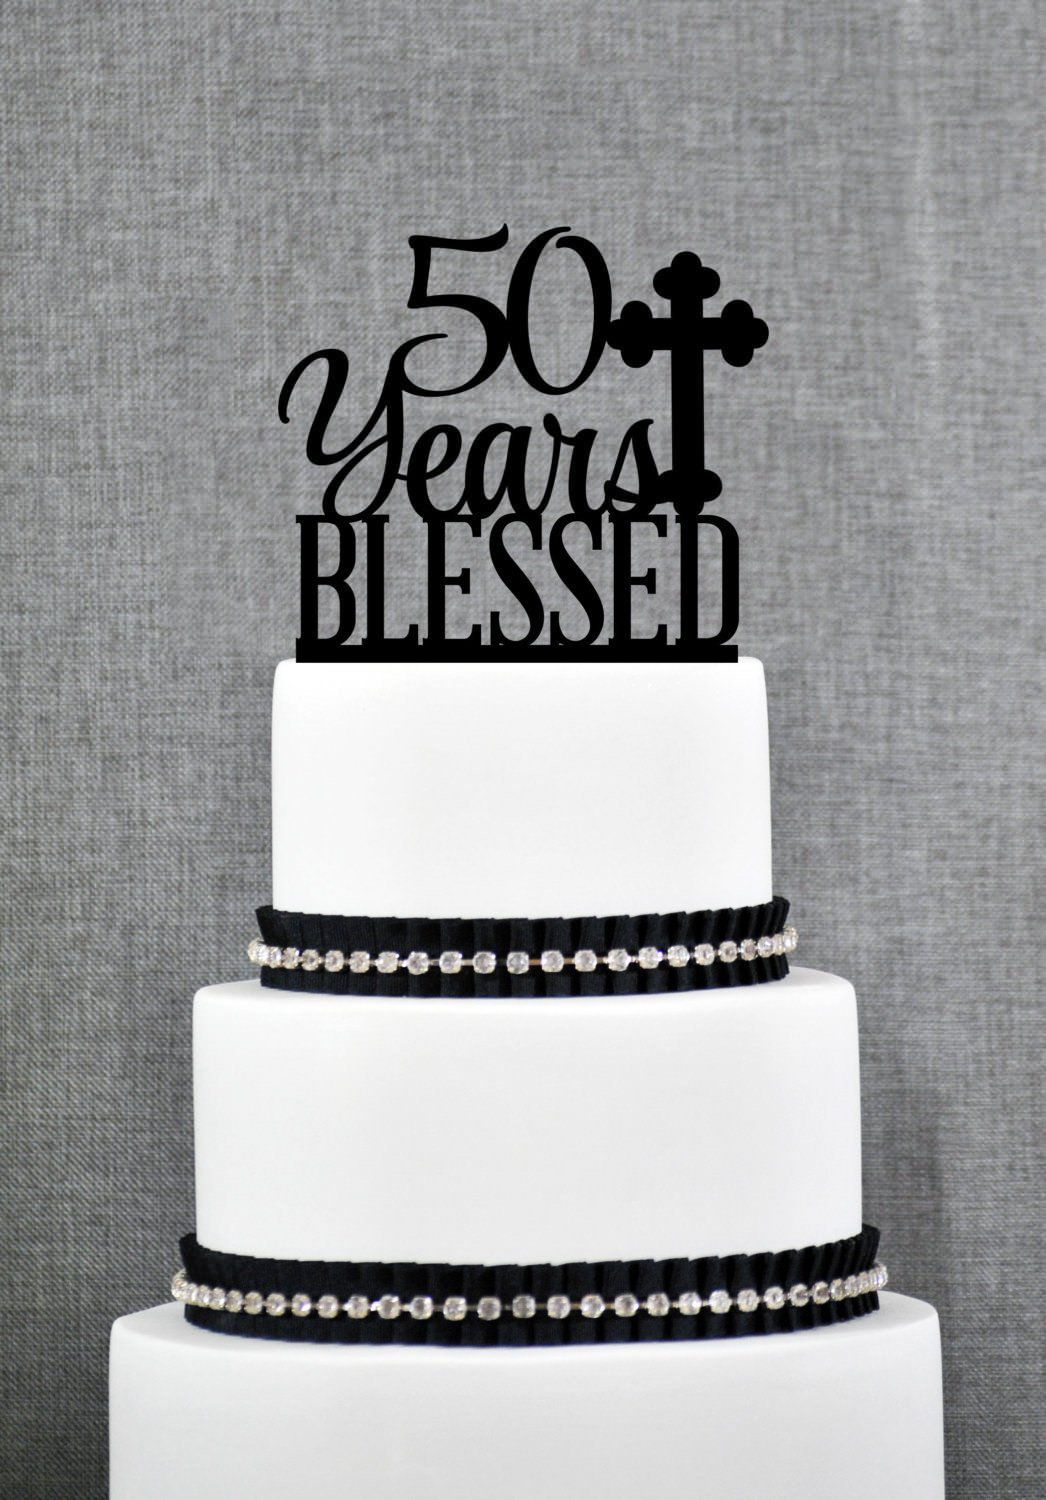 Amazon 50 Years Blessed Cake Topper For Men Classy 50th Birthday Gift Anniversary Party Decorations Kitchen